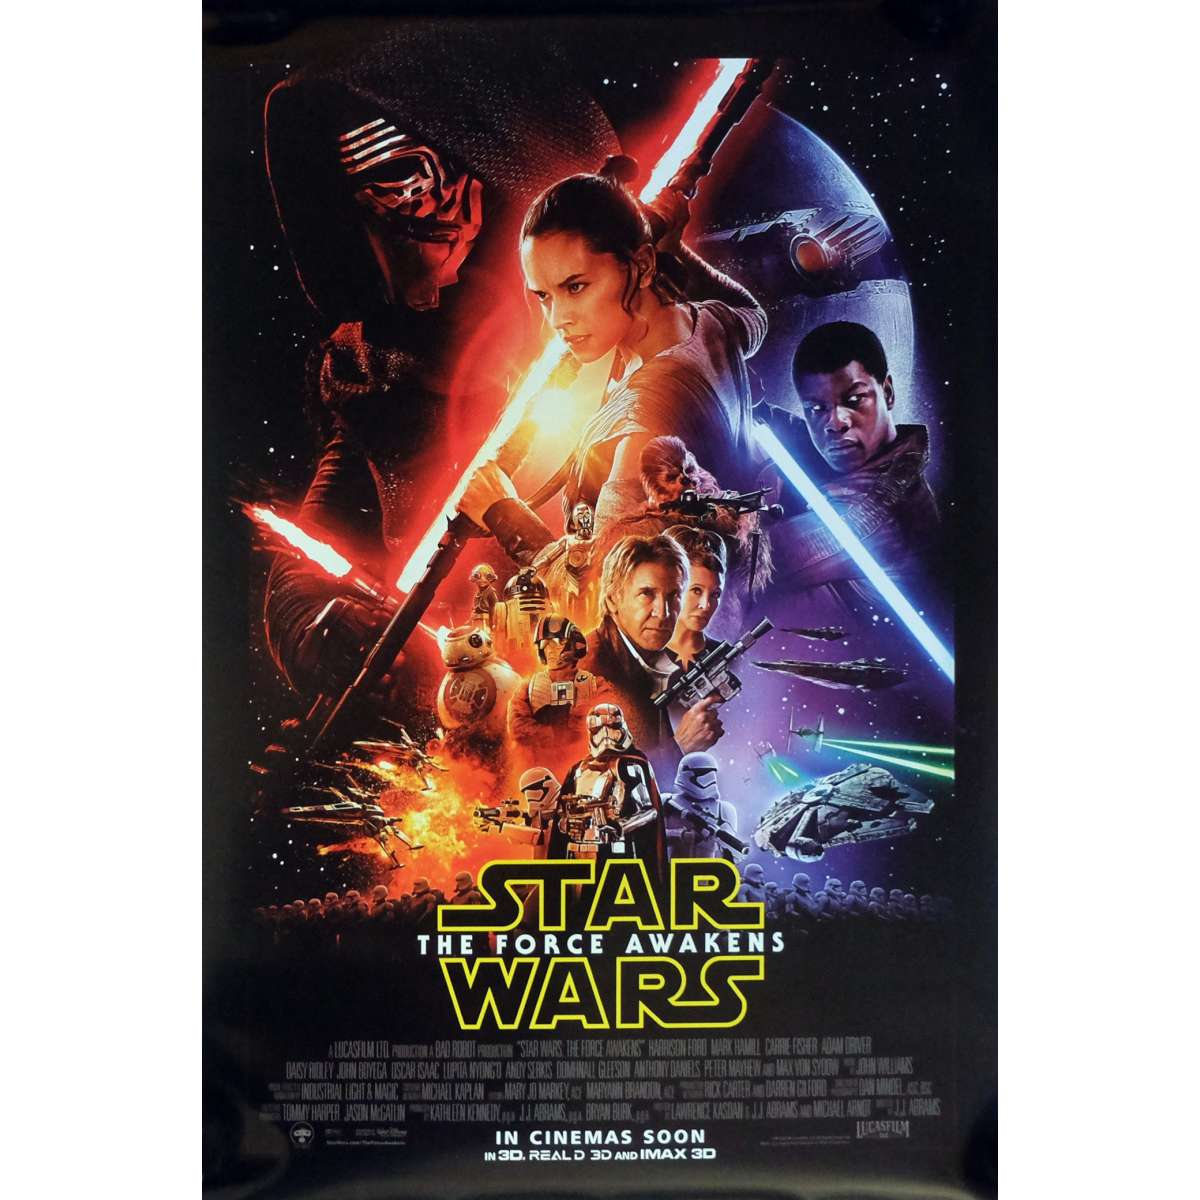 STAR WARS THE FORCE AWAKENS VII 7 ORIGINAL Int\'l DS Movie Poster - 27x40 in.